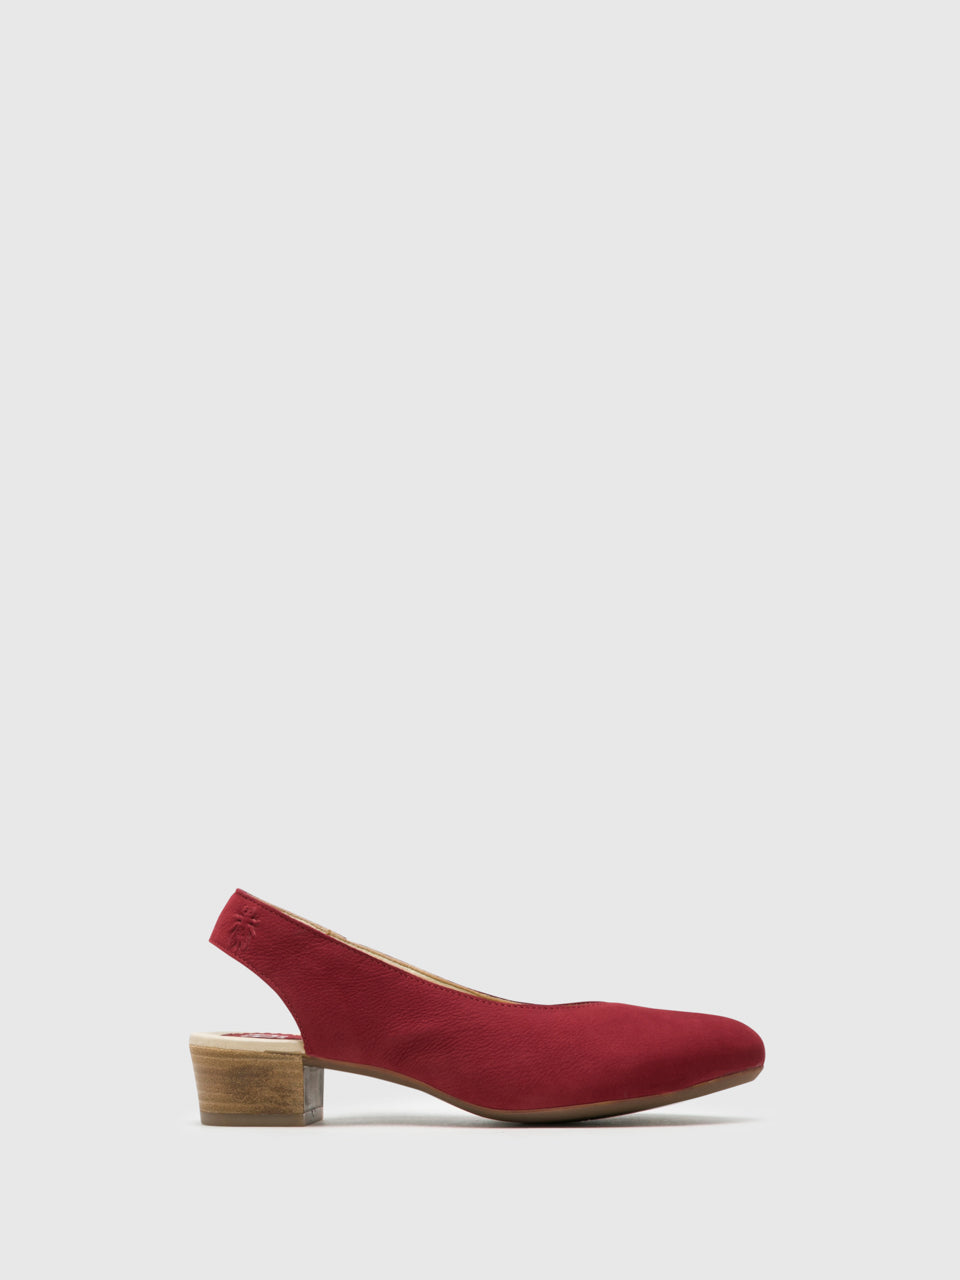 Fly London Pumps mit Fersenriemen Schuhe in Rot